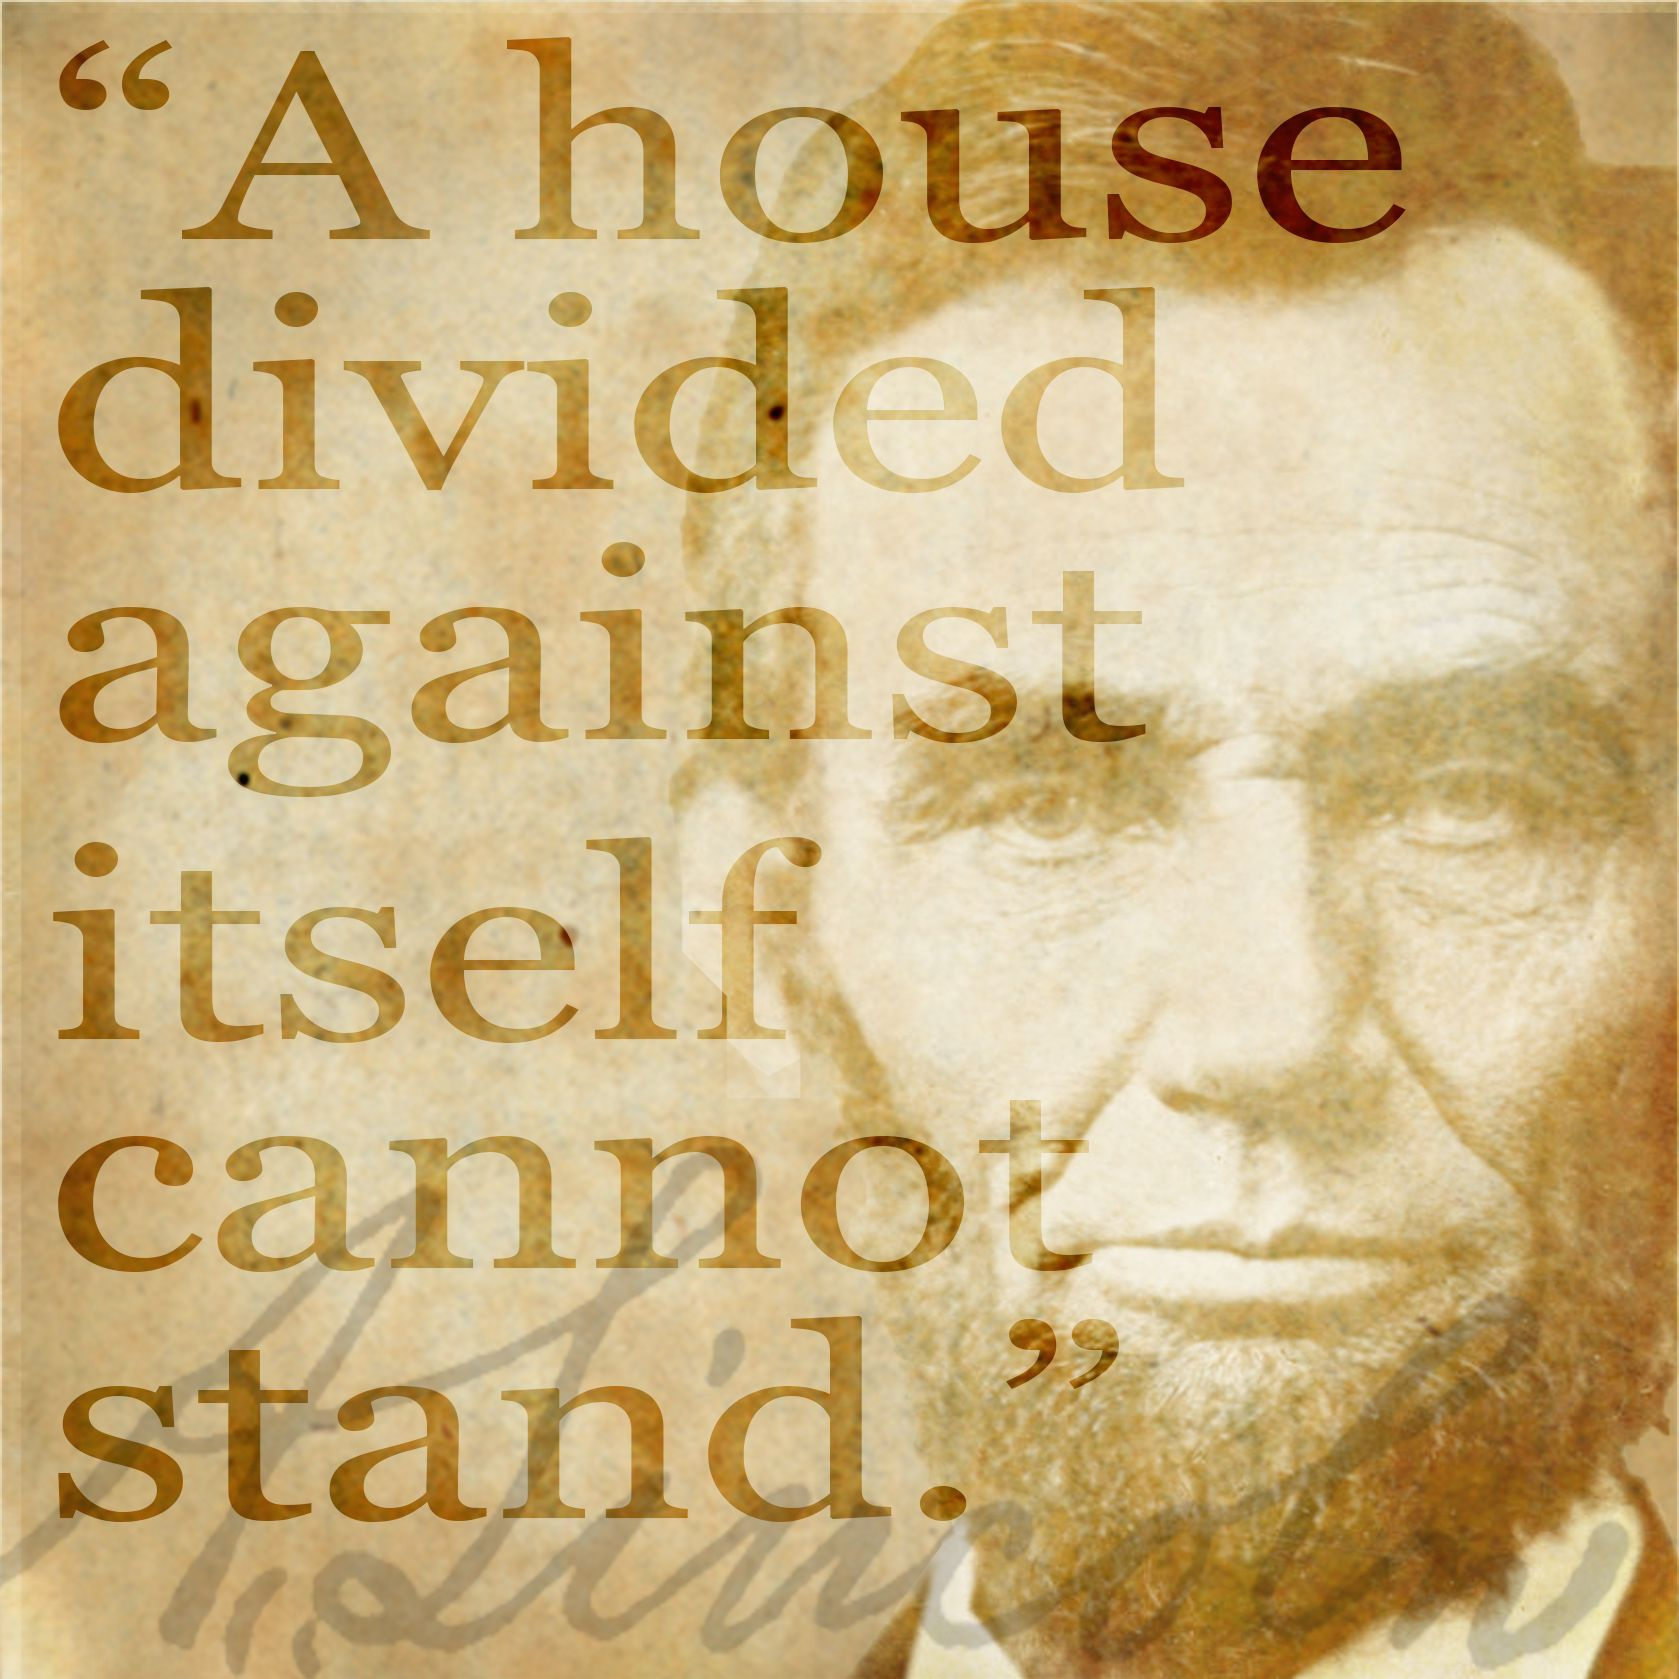 Abraham Lincoln Speech a House Divided Cannot Stand